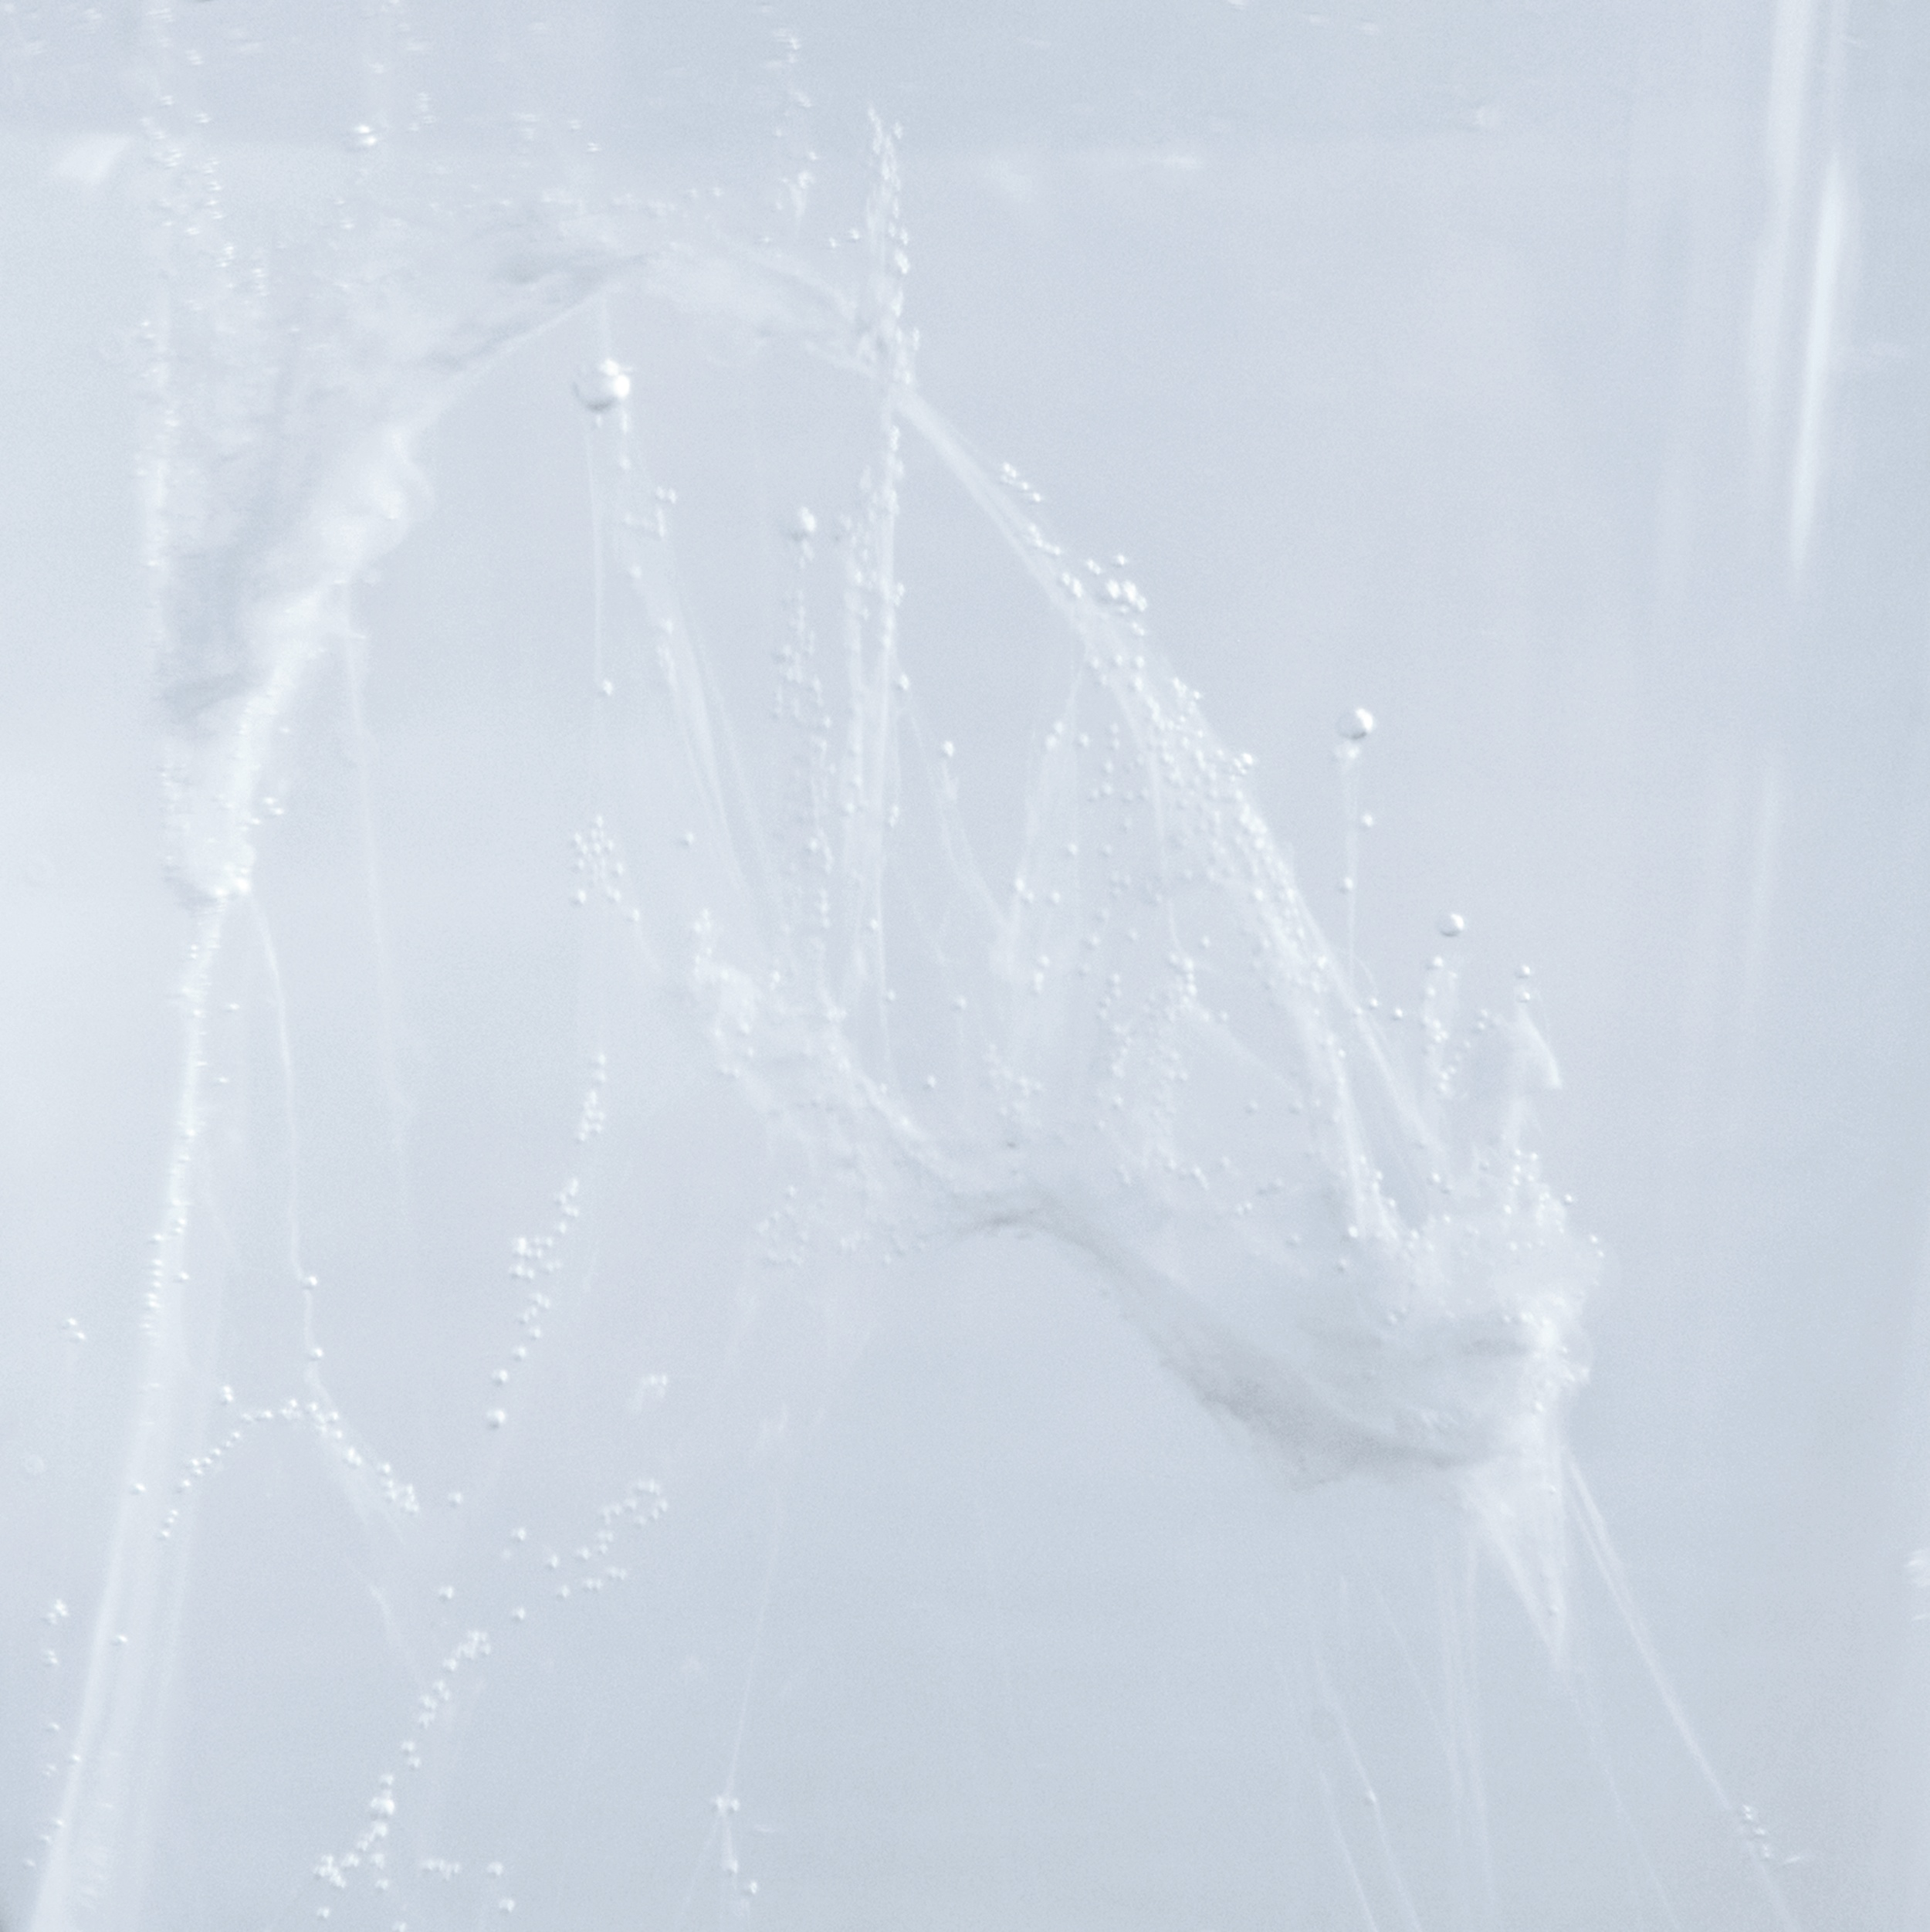 Diary IV (after Rorschach)  Archival pigment print, mounted on one-inch thick plexi-glass  16 x 16 in. (40 x 40 cm)